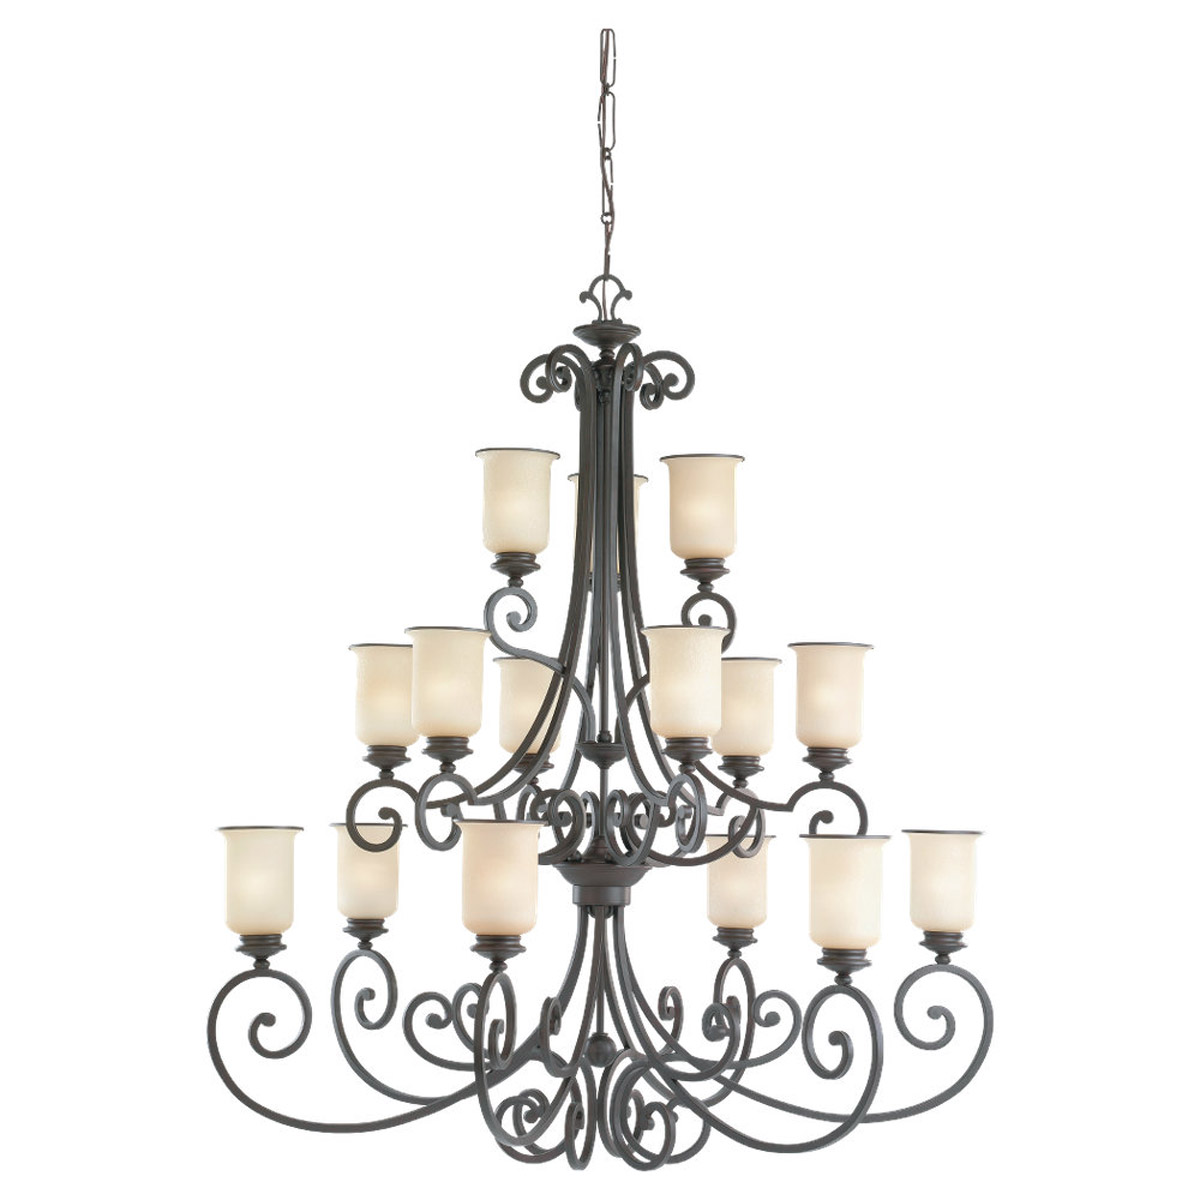 Sea Gull Lighting Acadia 15 Light Chandelier in Misted Bronze 31347-814